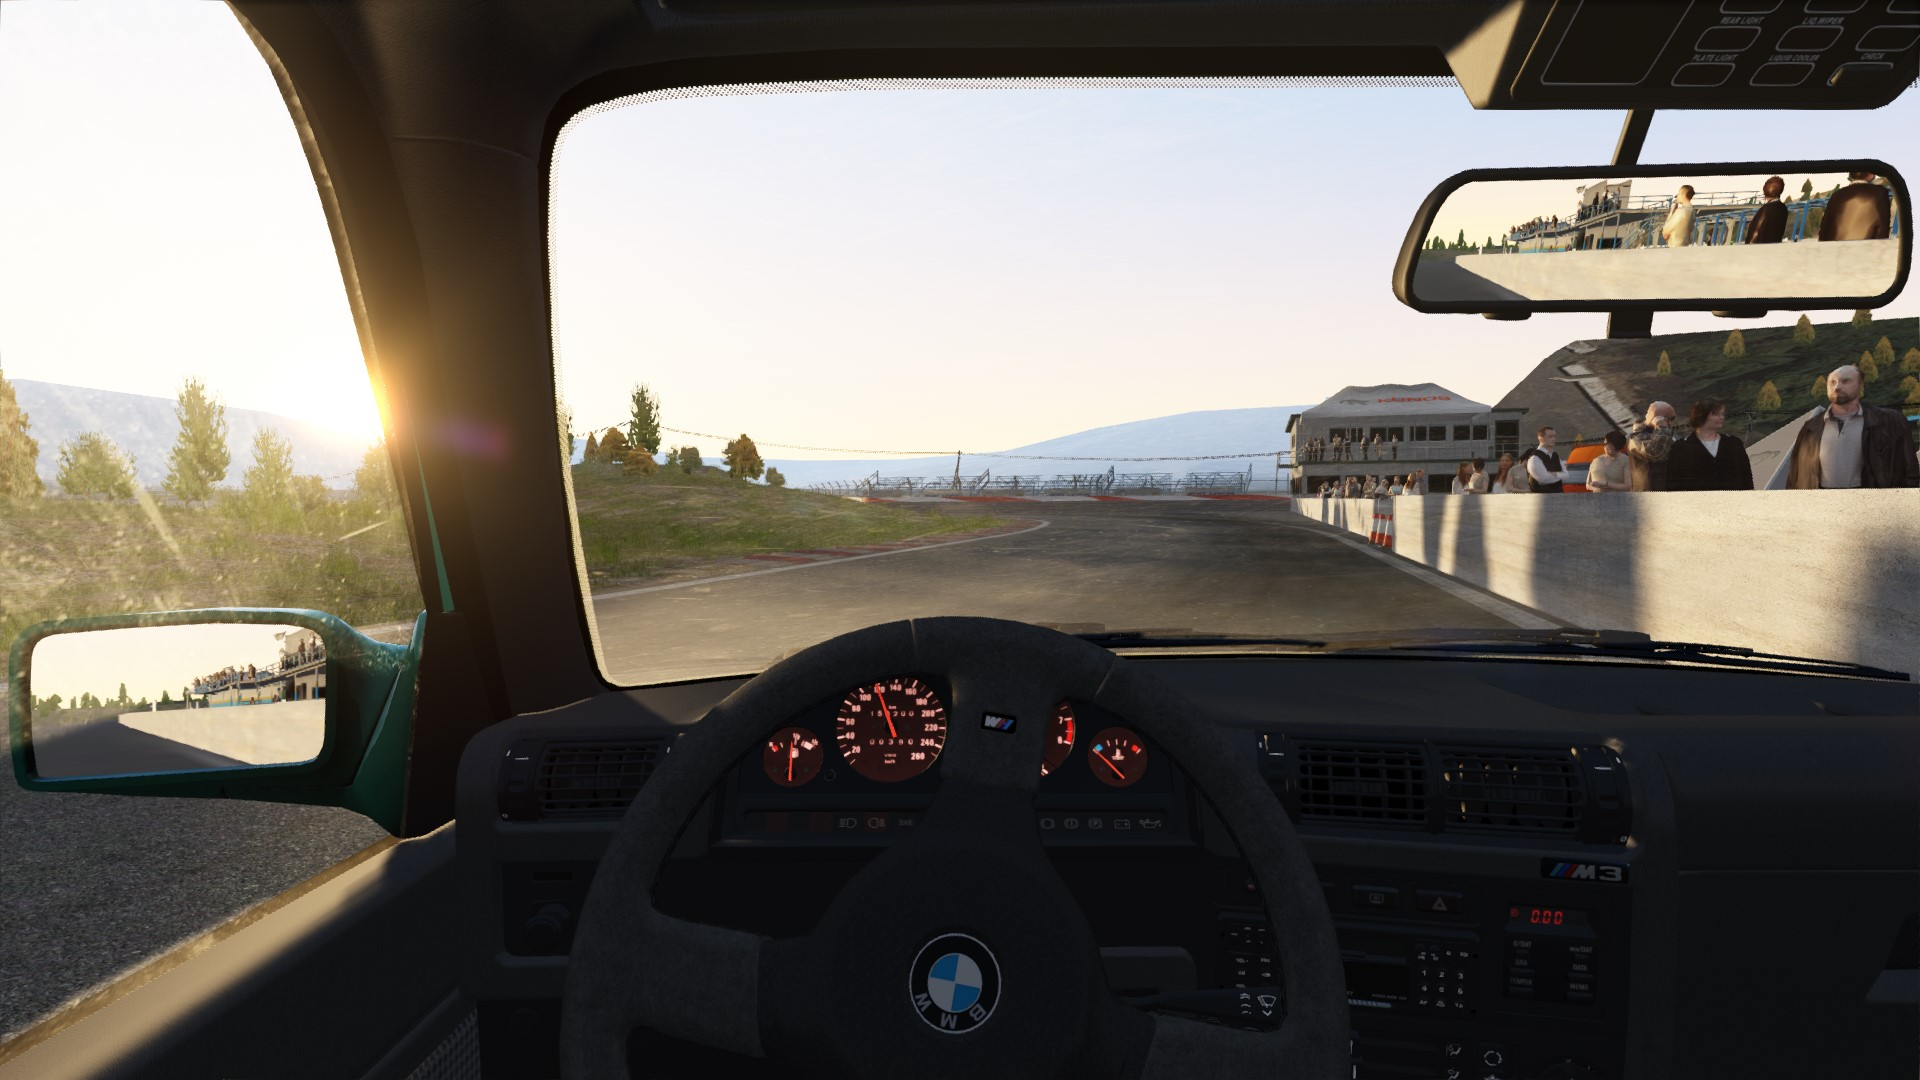 Screenshot_bmw_m3_e30_drift_suzukatwindrift_8-4-116-0-11-48.jpg